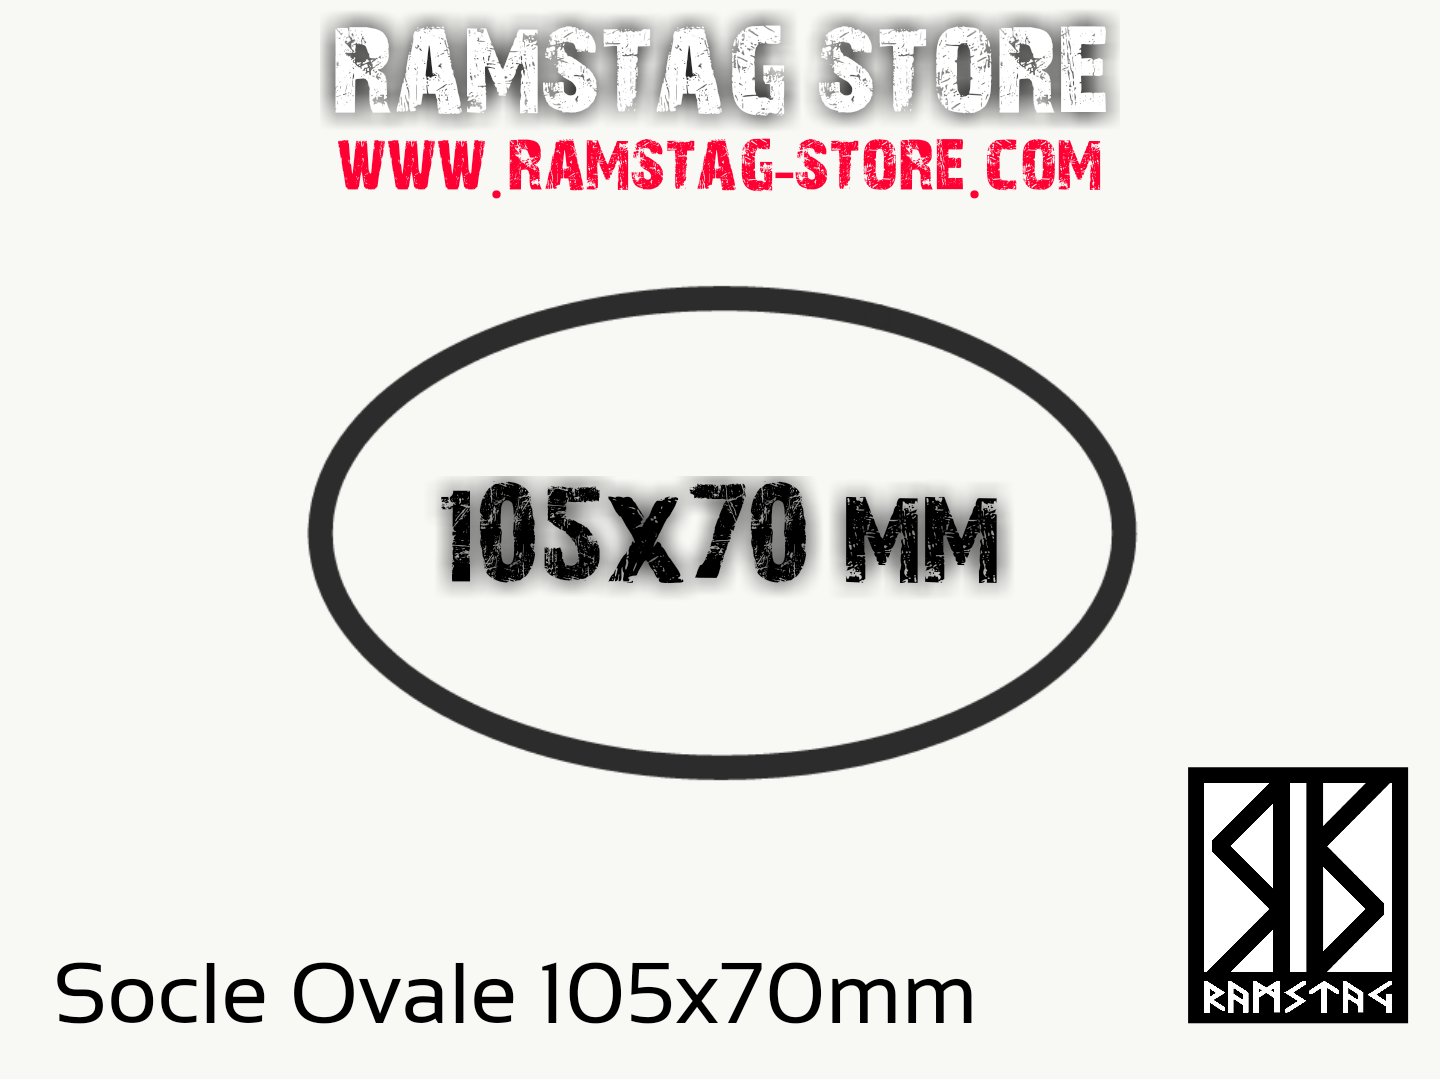 Socle Ovale 105x70mm